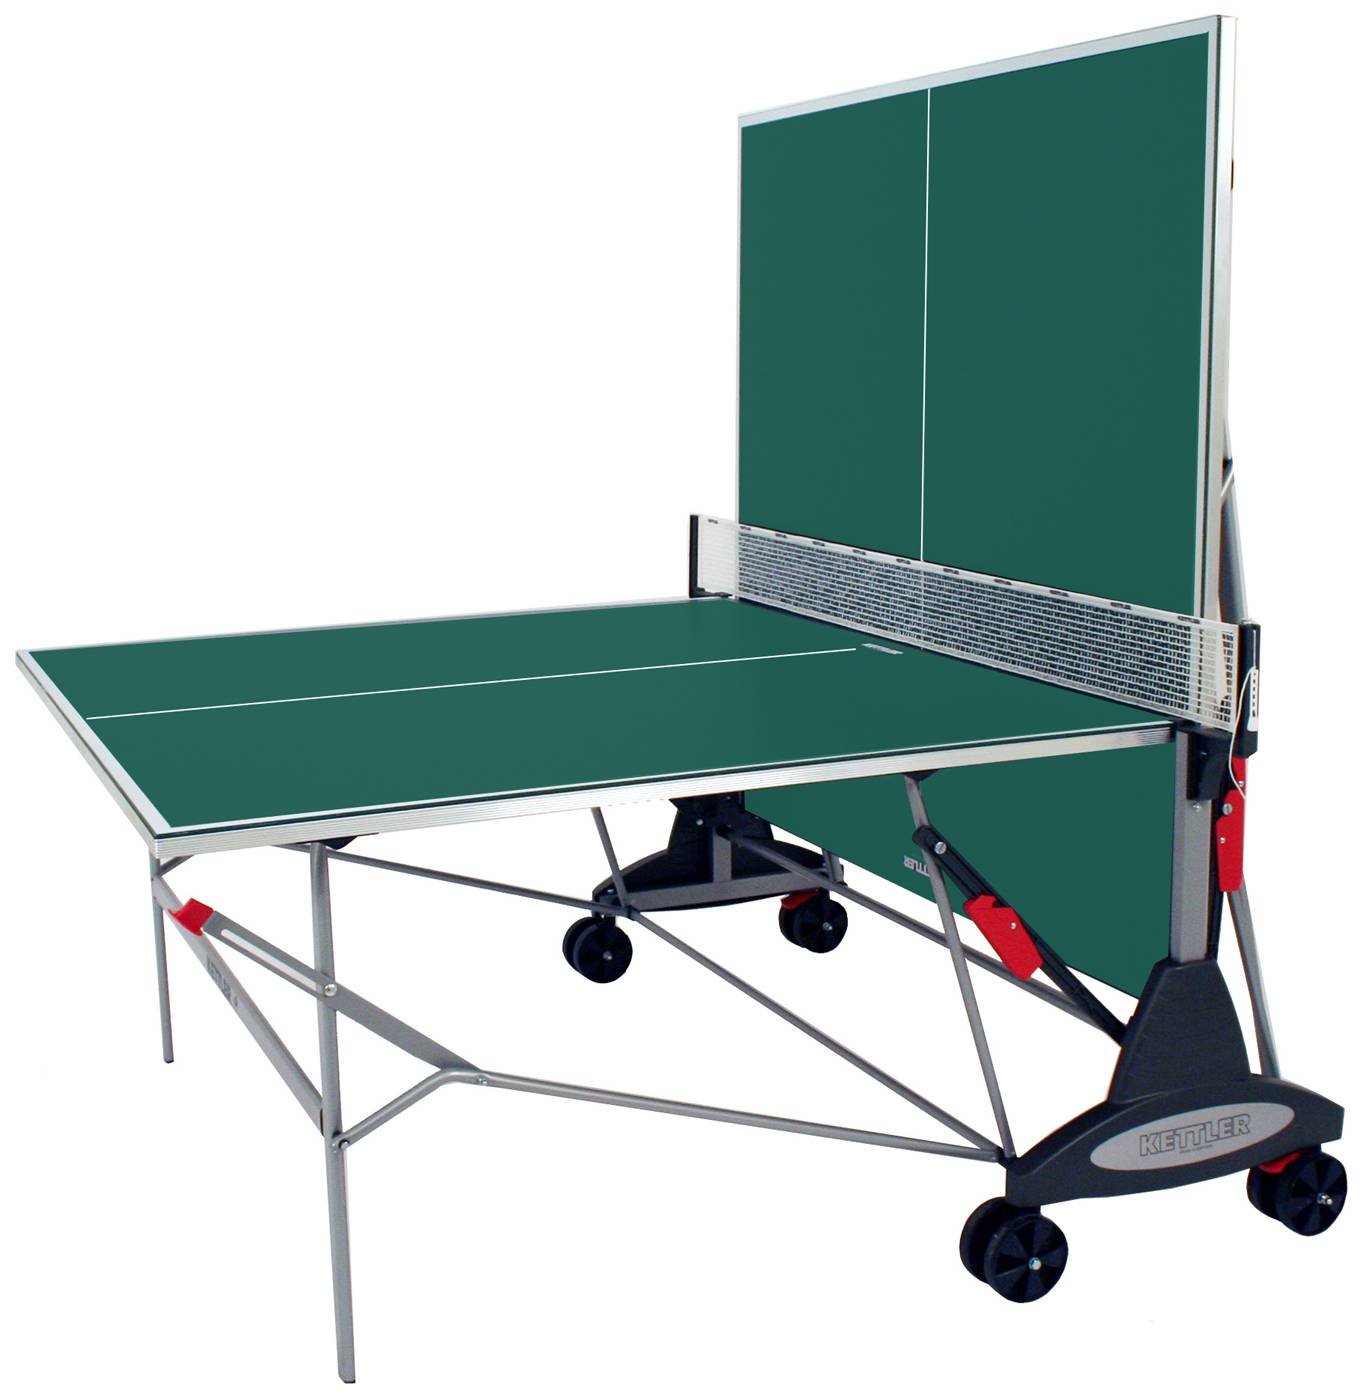 kettler stockholm gt indoor ping pong table. Black Bedroom Furniture Sets. Home Design Ideas